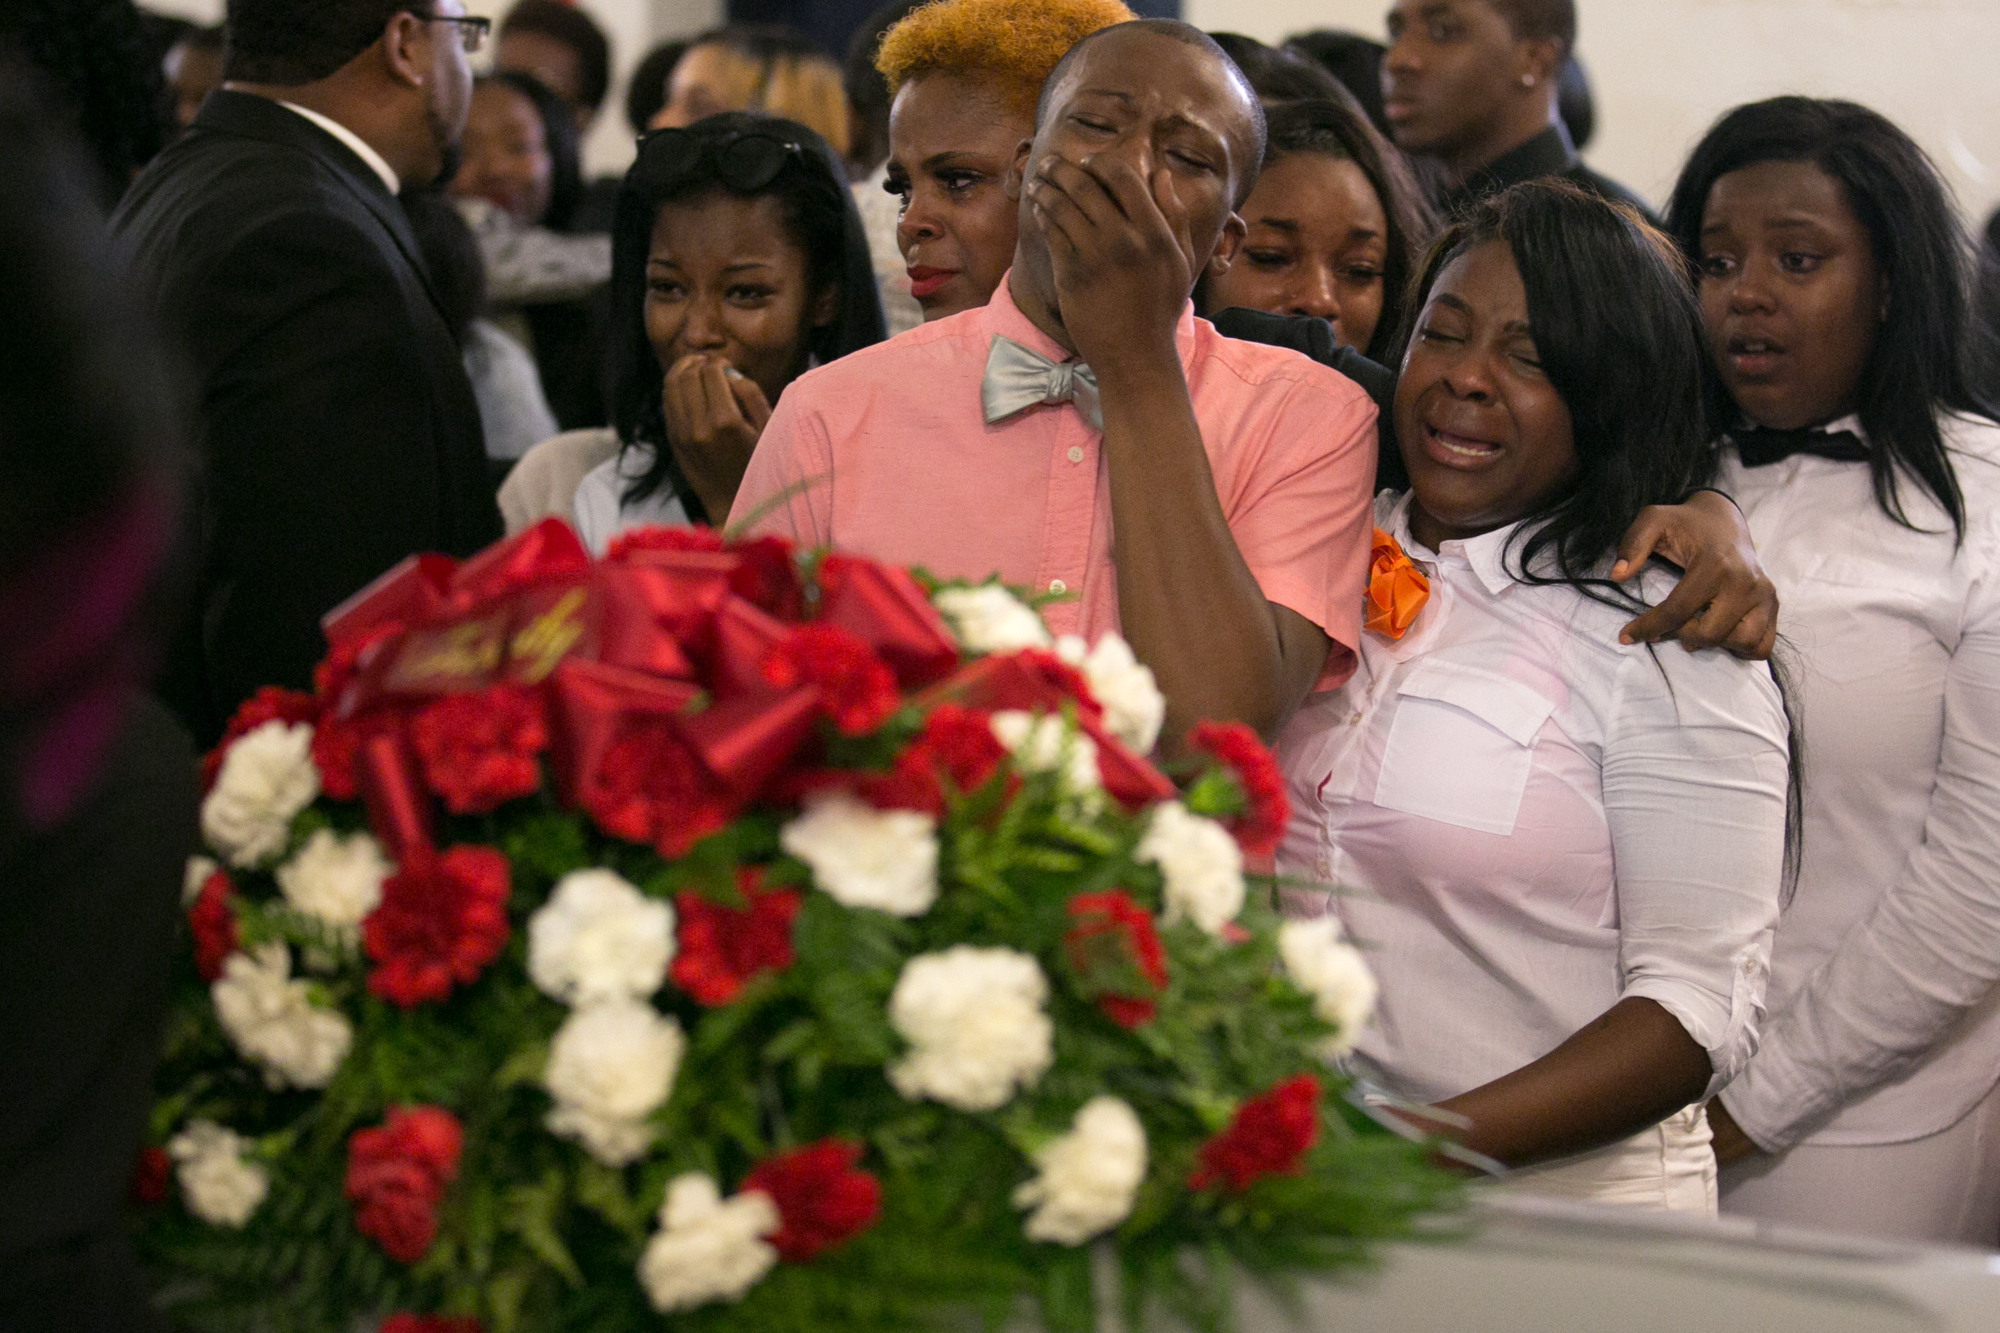 Visitors mourn at the funeral for Jonah Barley in Rochester, N.Y. on Saturday, August 29, 2015. Barley and two others were killed in a drive-by shooting outside the Boys and Girls Club in Rochester on August 19.